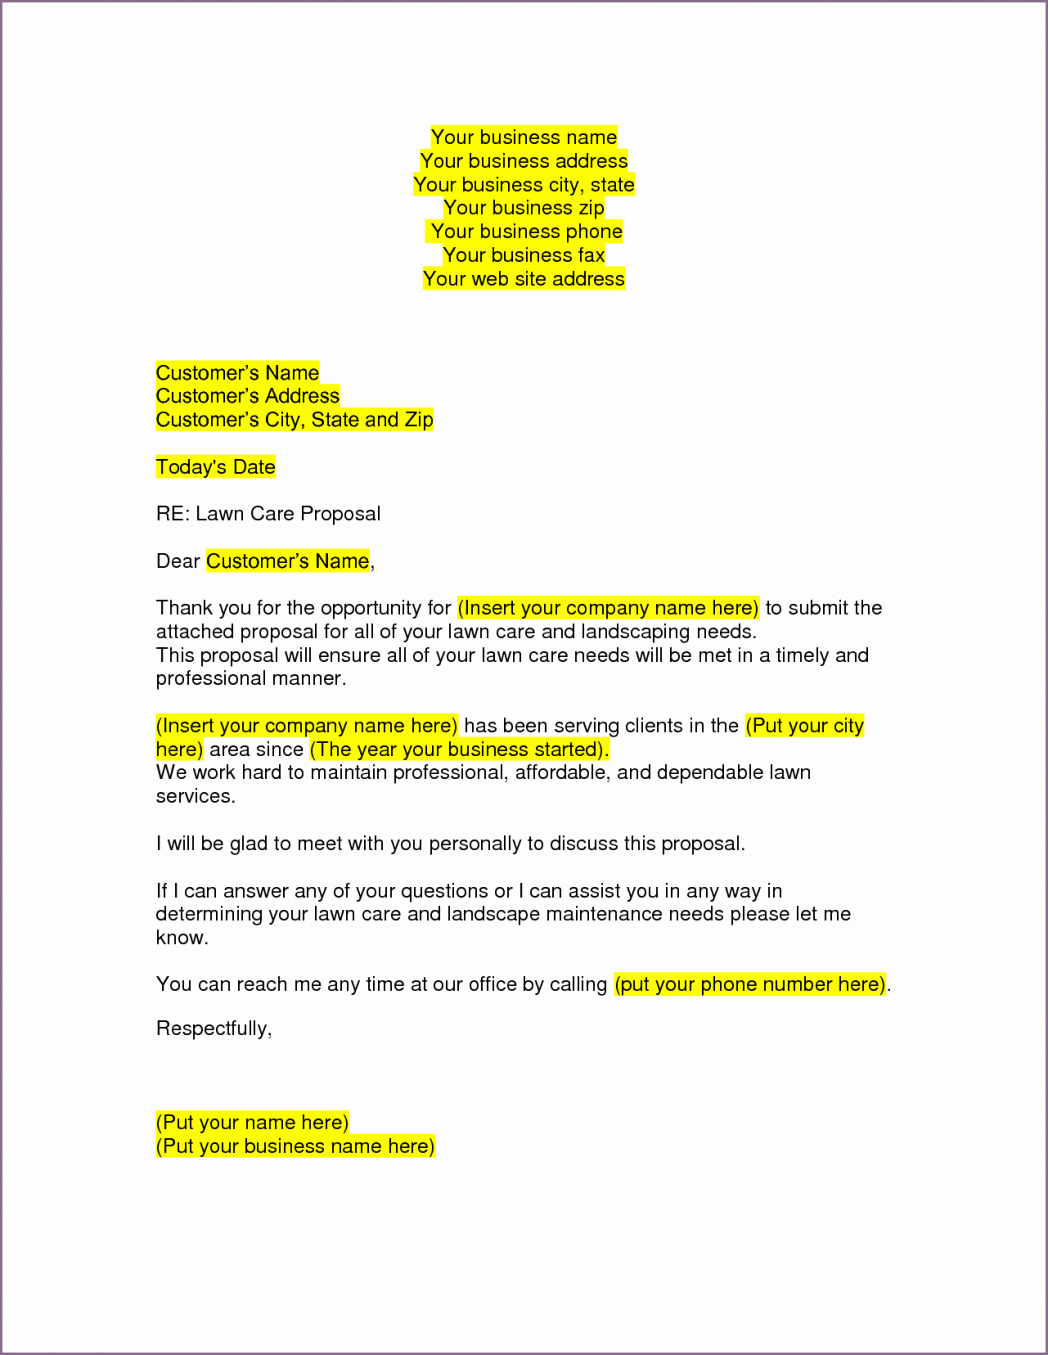 Lawn Service Proposal Template Free Best Of Lawn Care Proposal